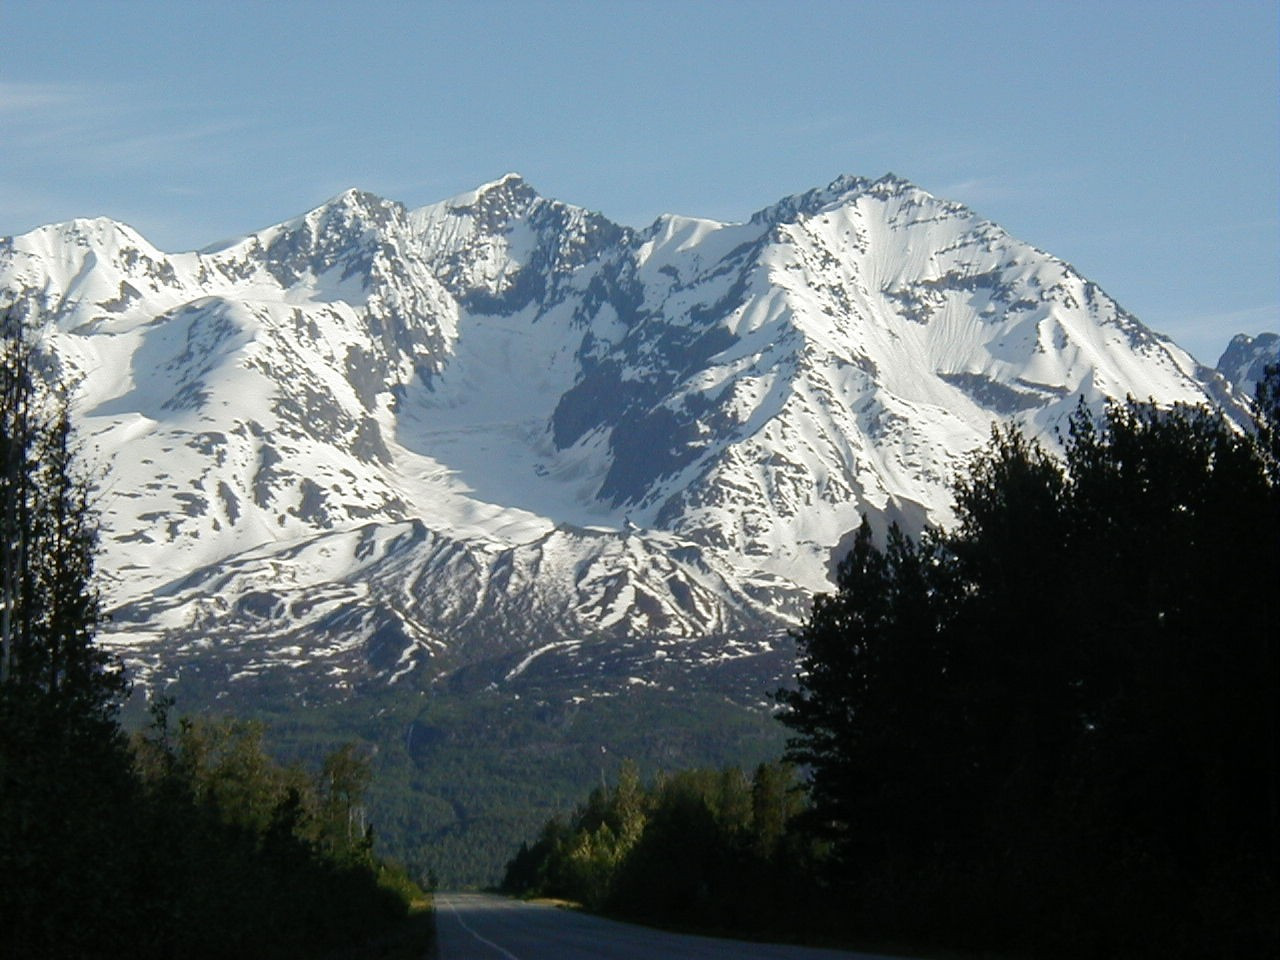 7/4/03 - Mt. Billy Mitchell, seen along the southbound Richardson Hwy., headed to Valdez.